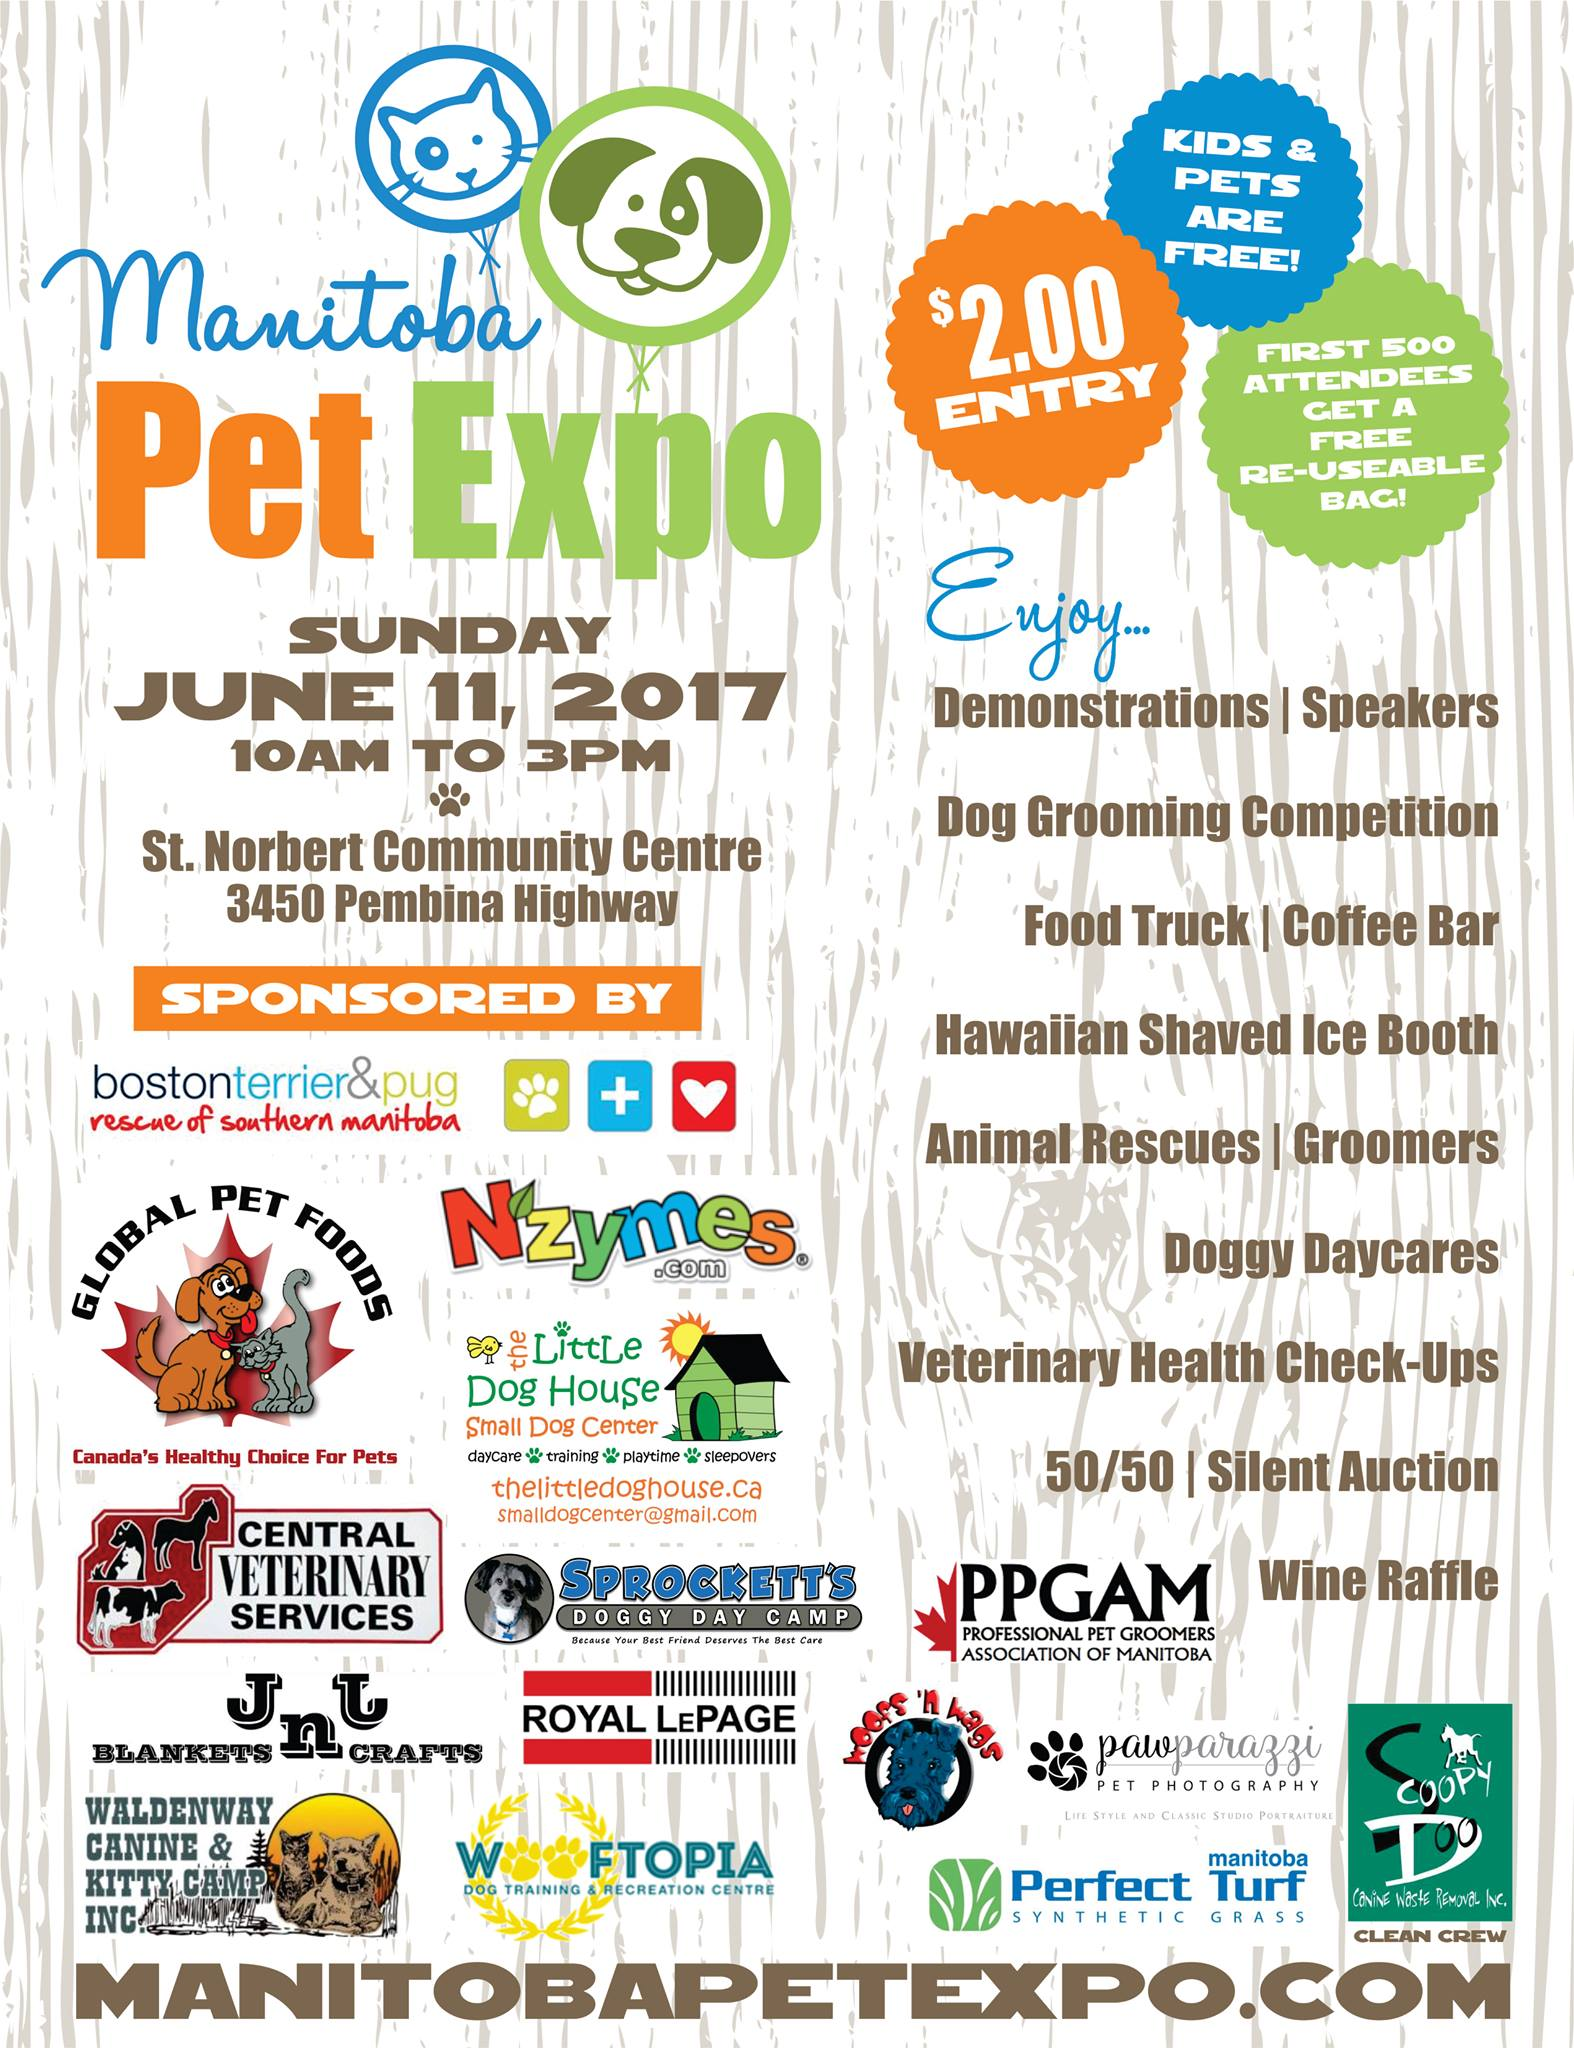 Manitoba Pet Expo 2017